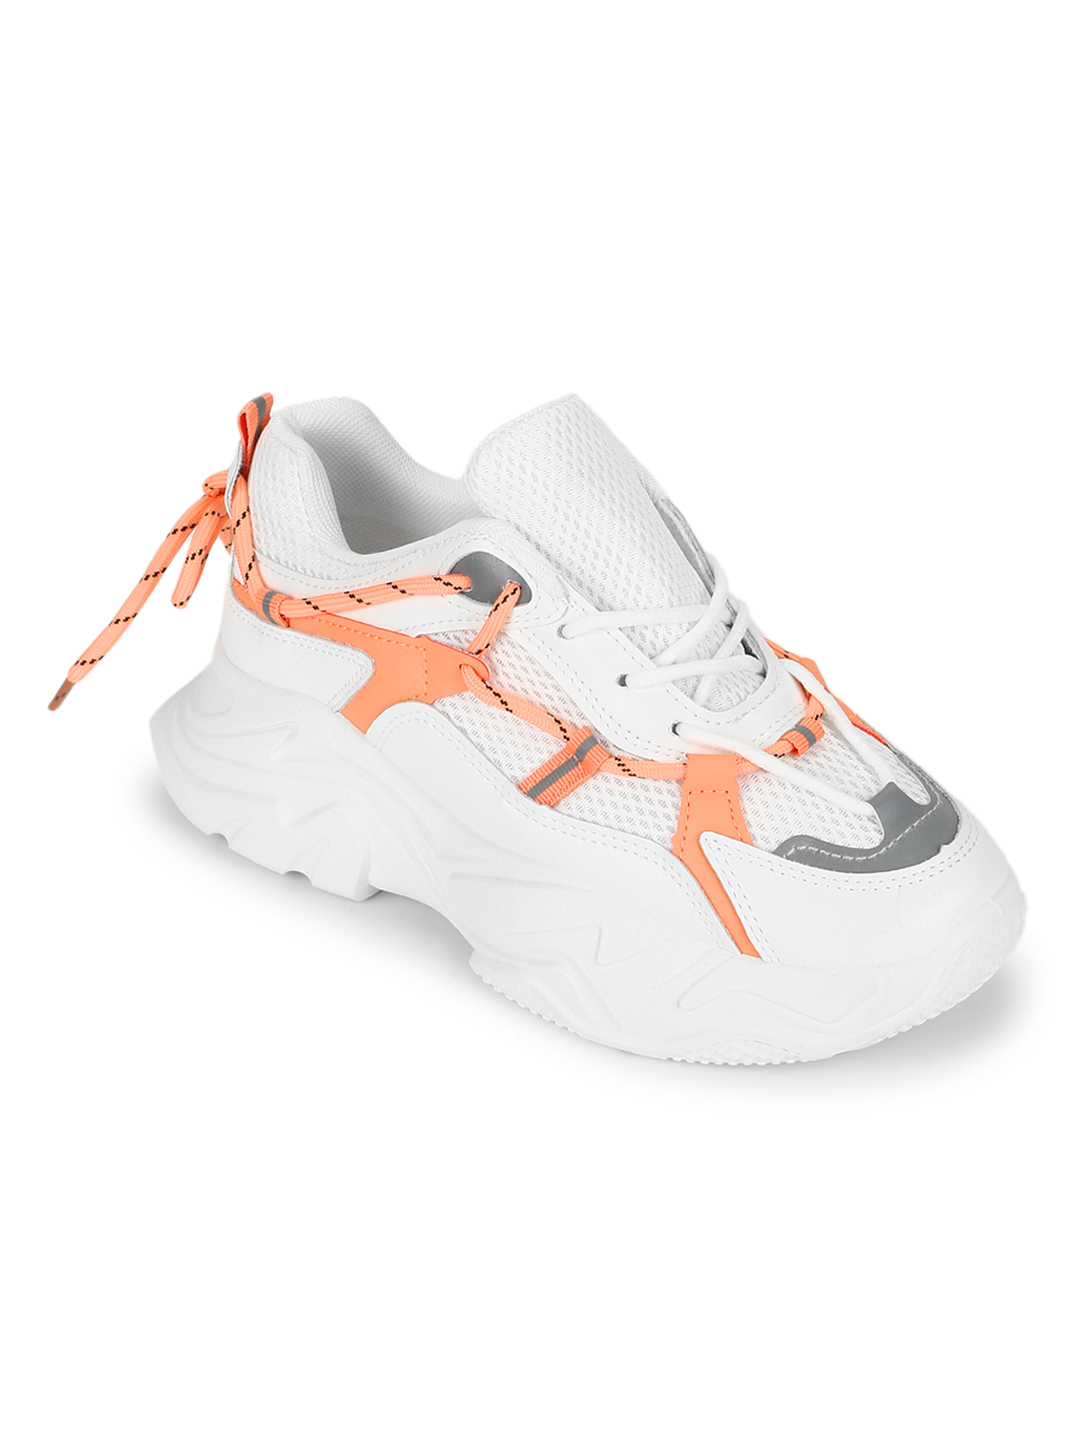 Truffle Collection | Truffle Collection Orange PU Side Lace Pattern Chunky Sneakers